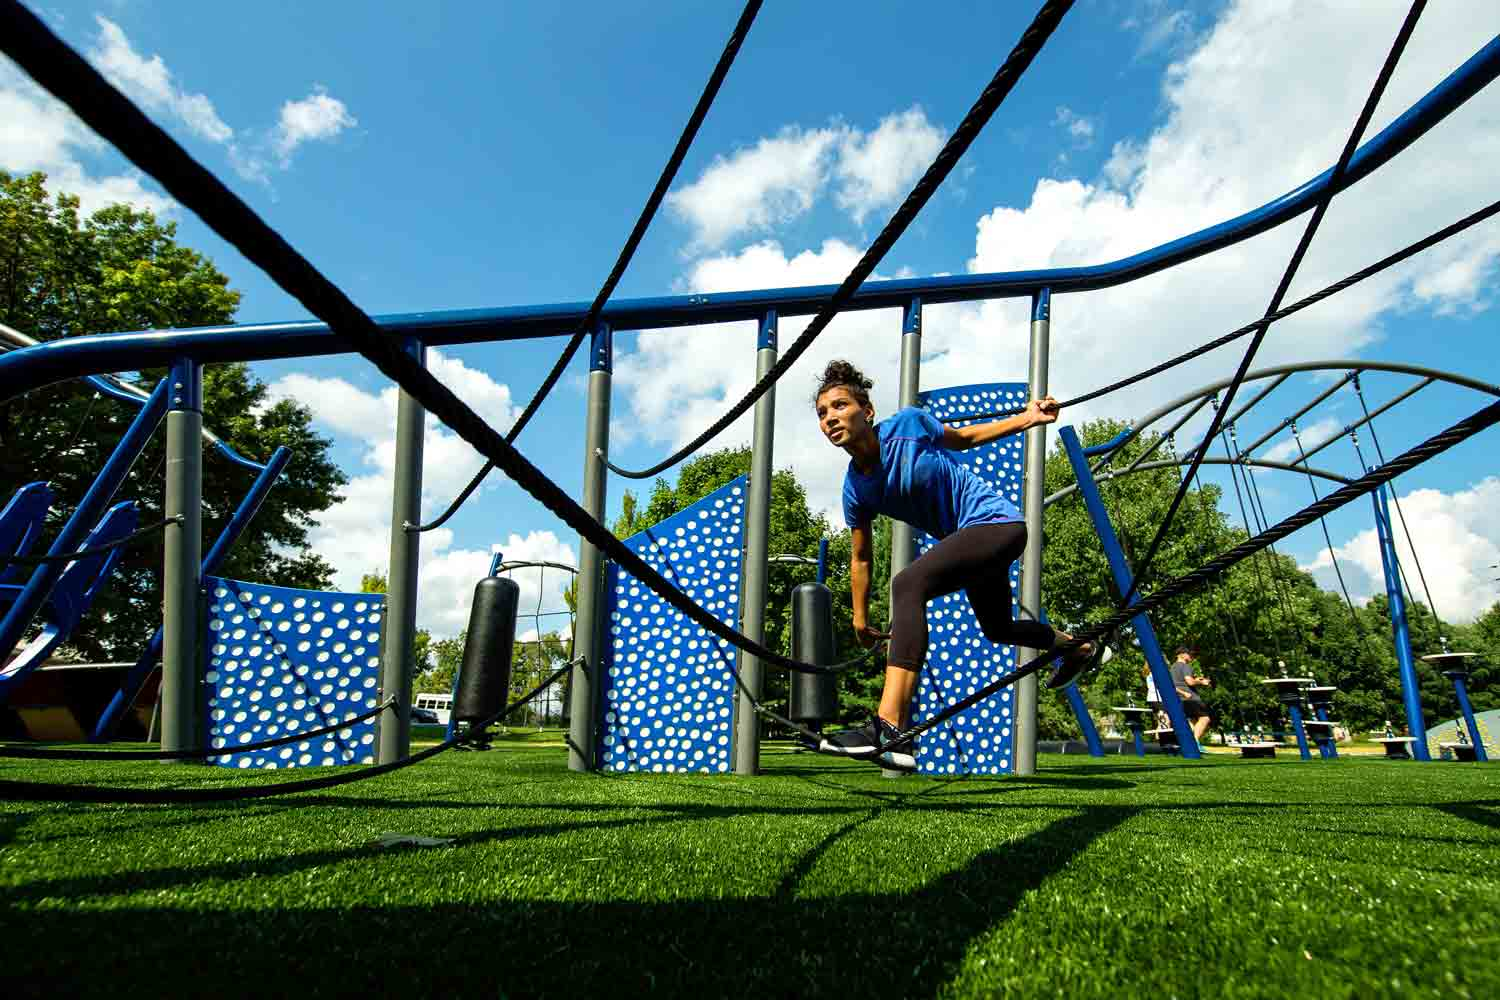 child using obstacle course